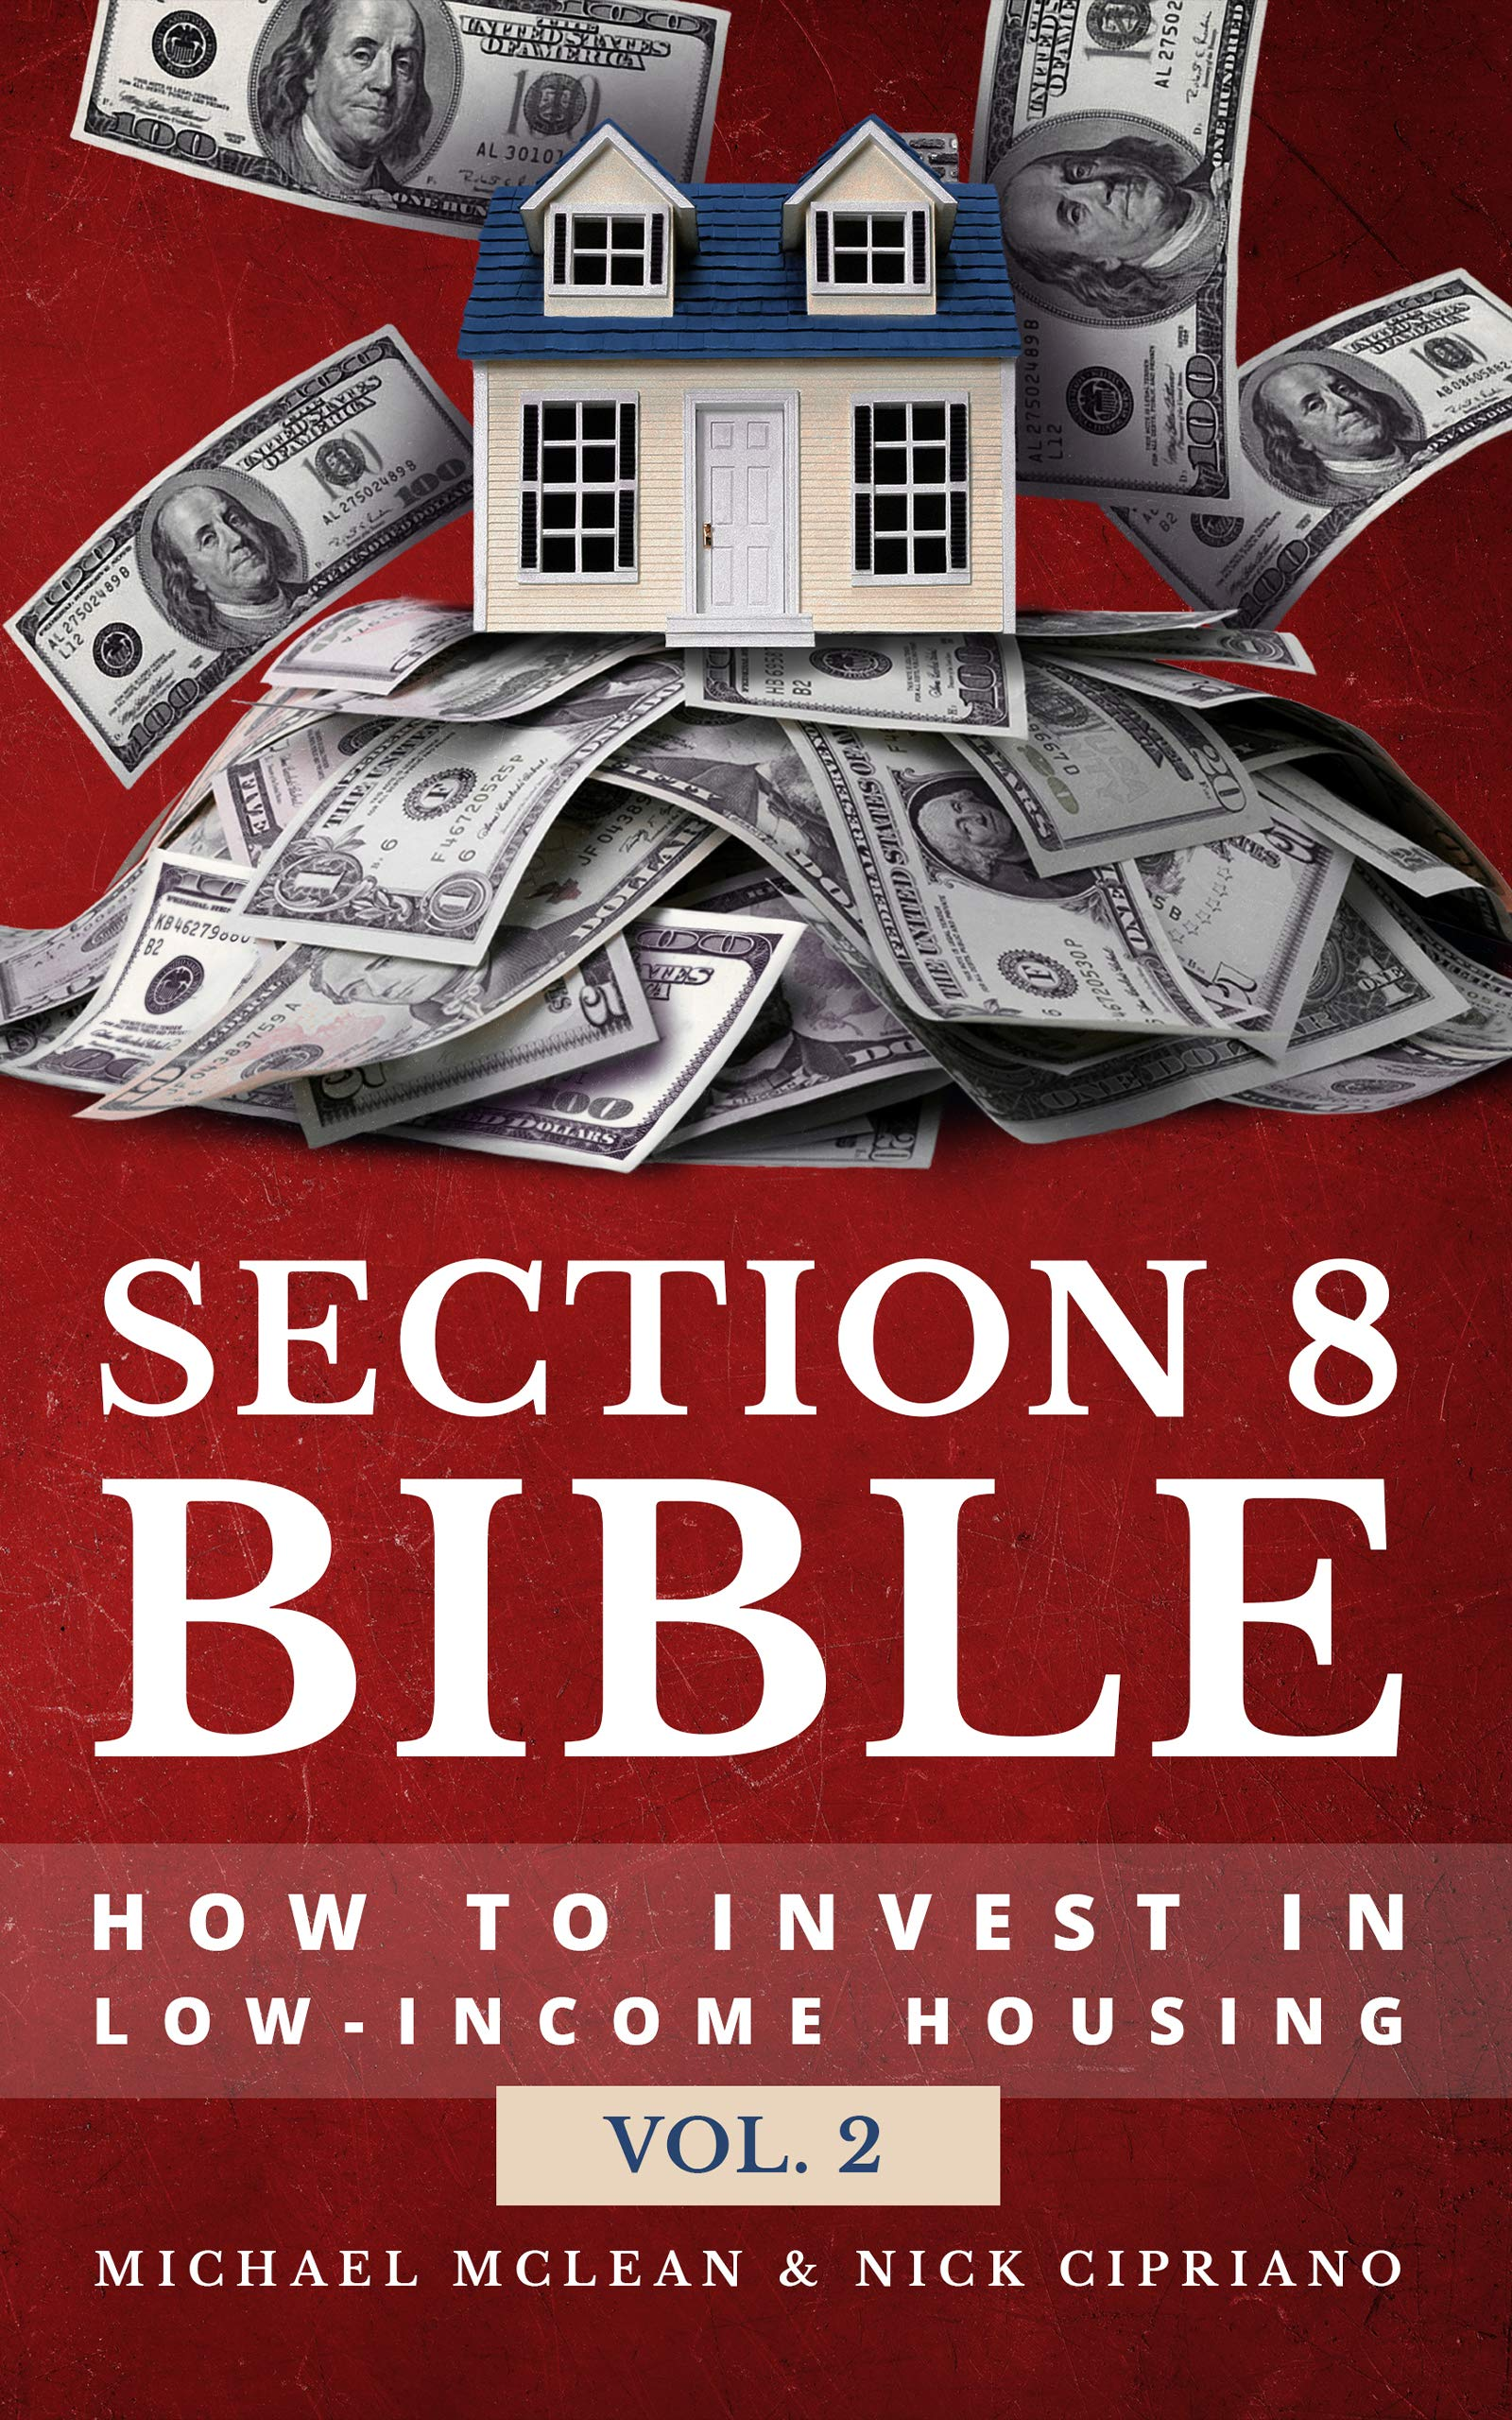 Section 8 Bible Volume 2: How to invest in low-income housing (Section 8 Bibles)